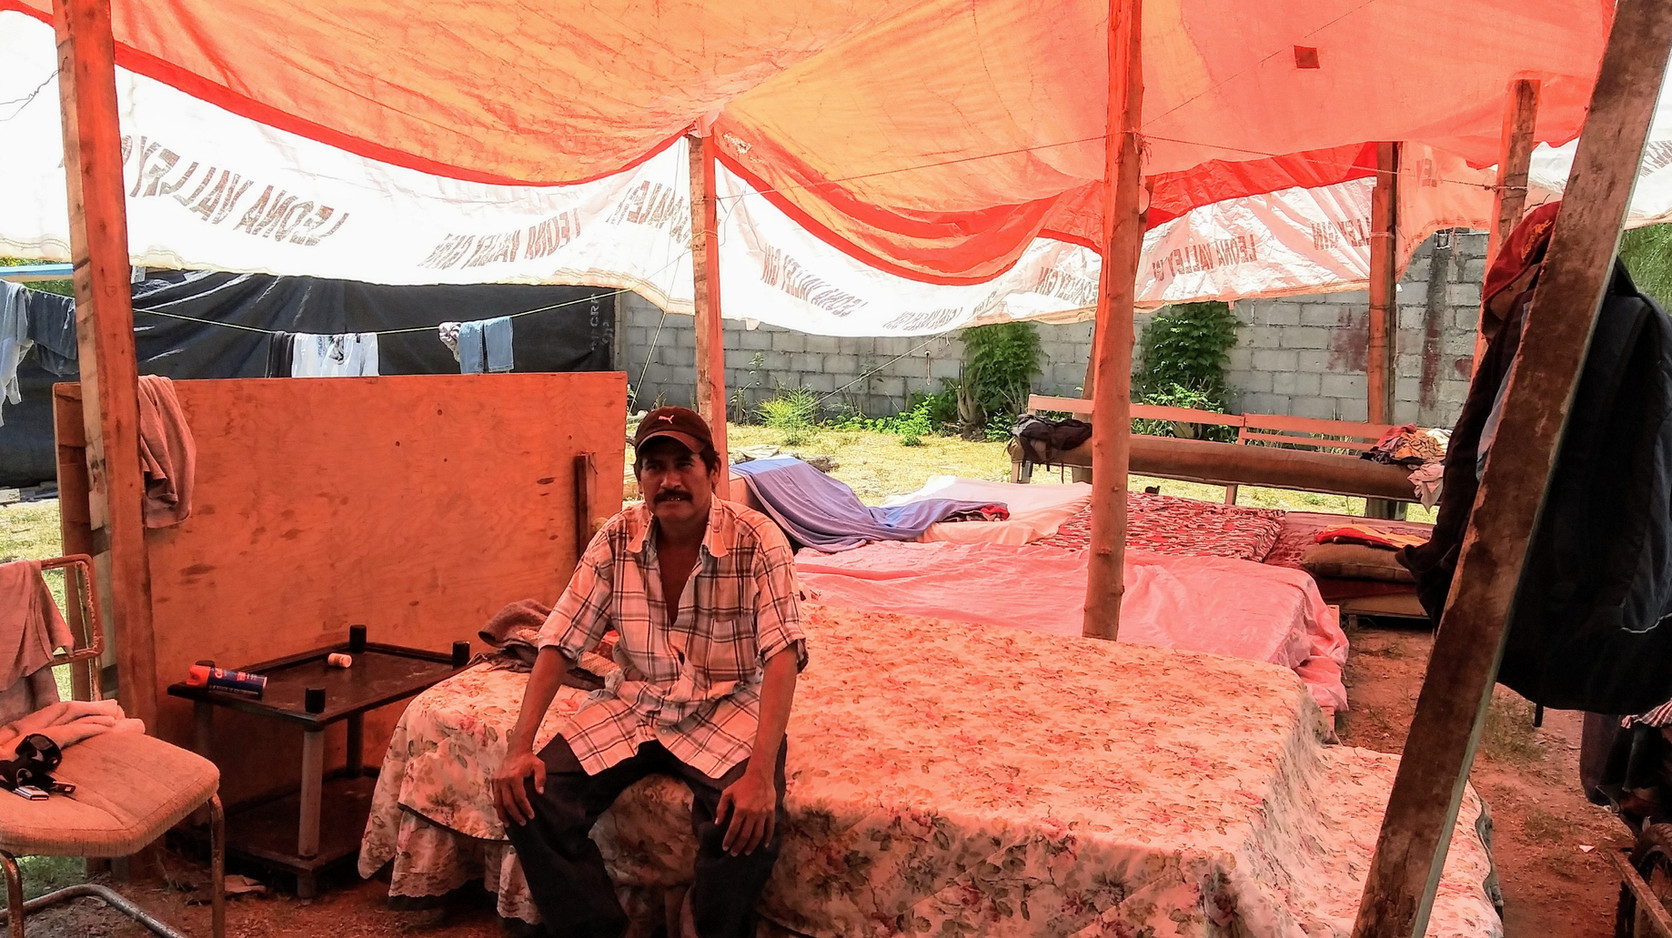 Men sleep outside under tarps